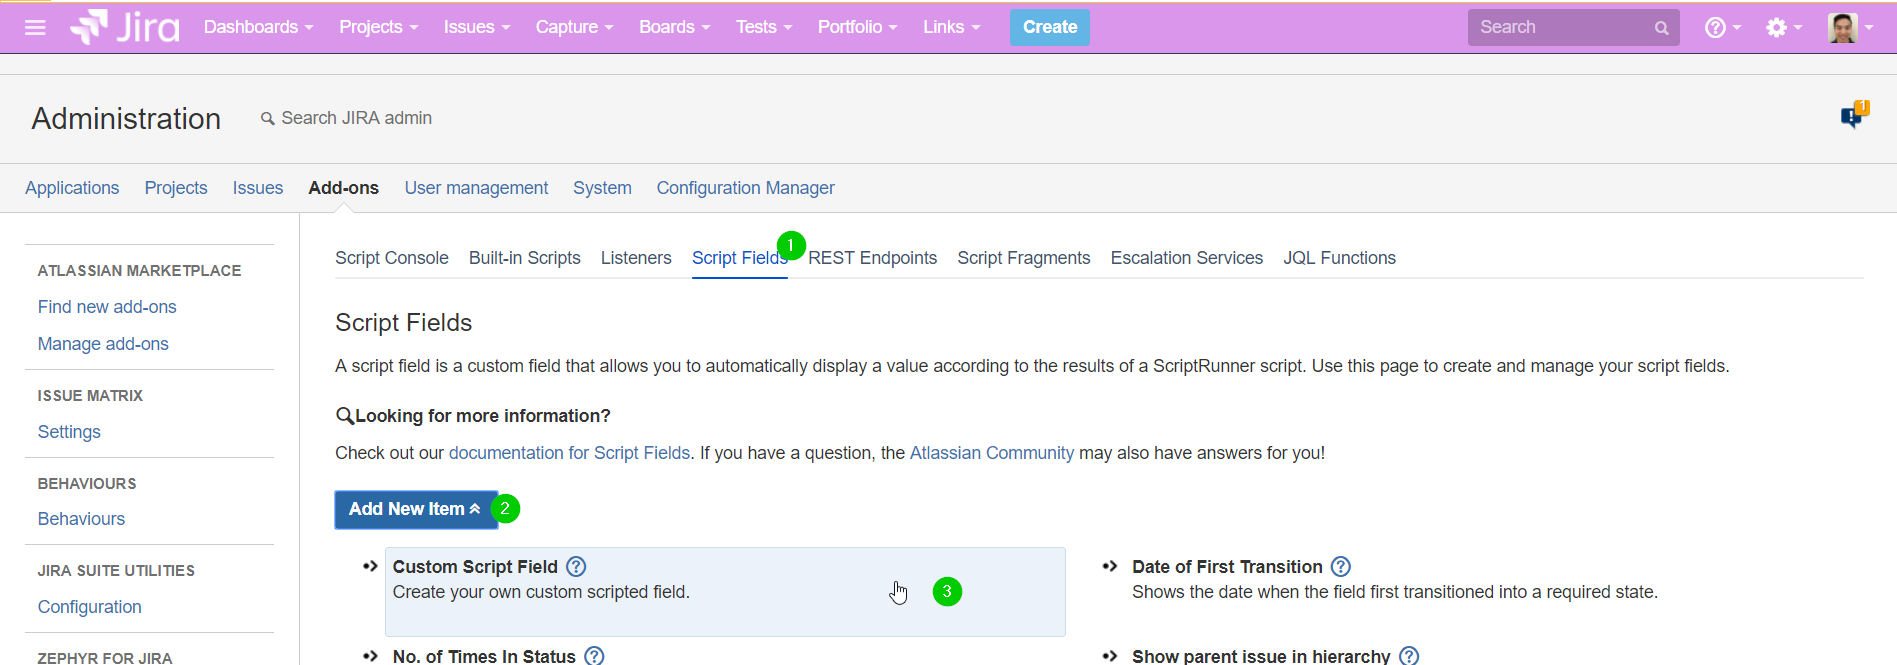 How to add Portfolio for Jira Team to dashboards